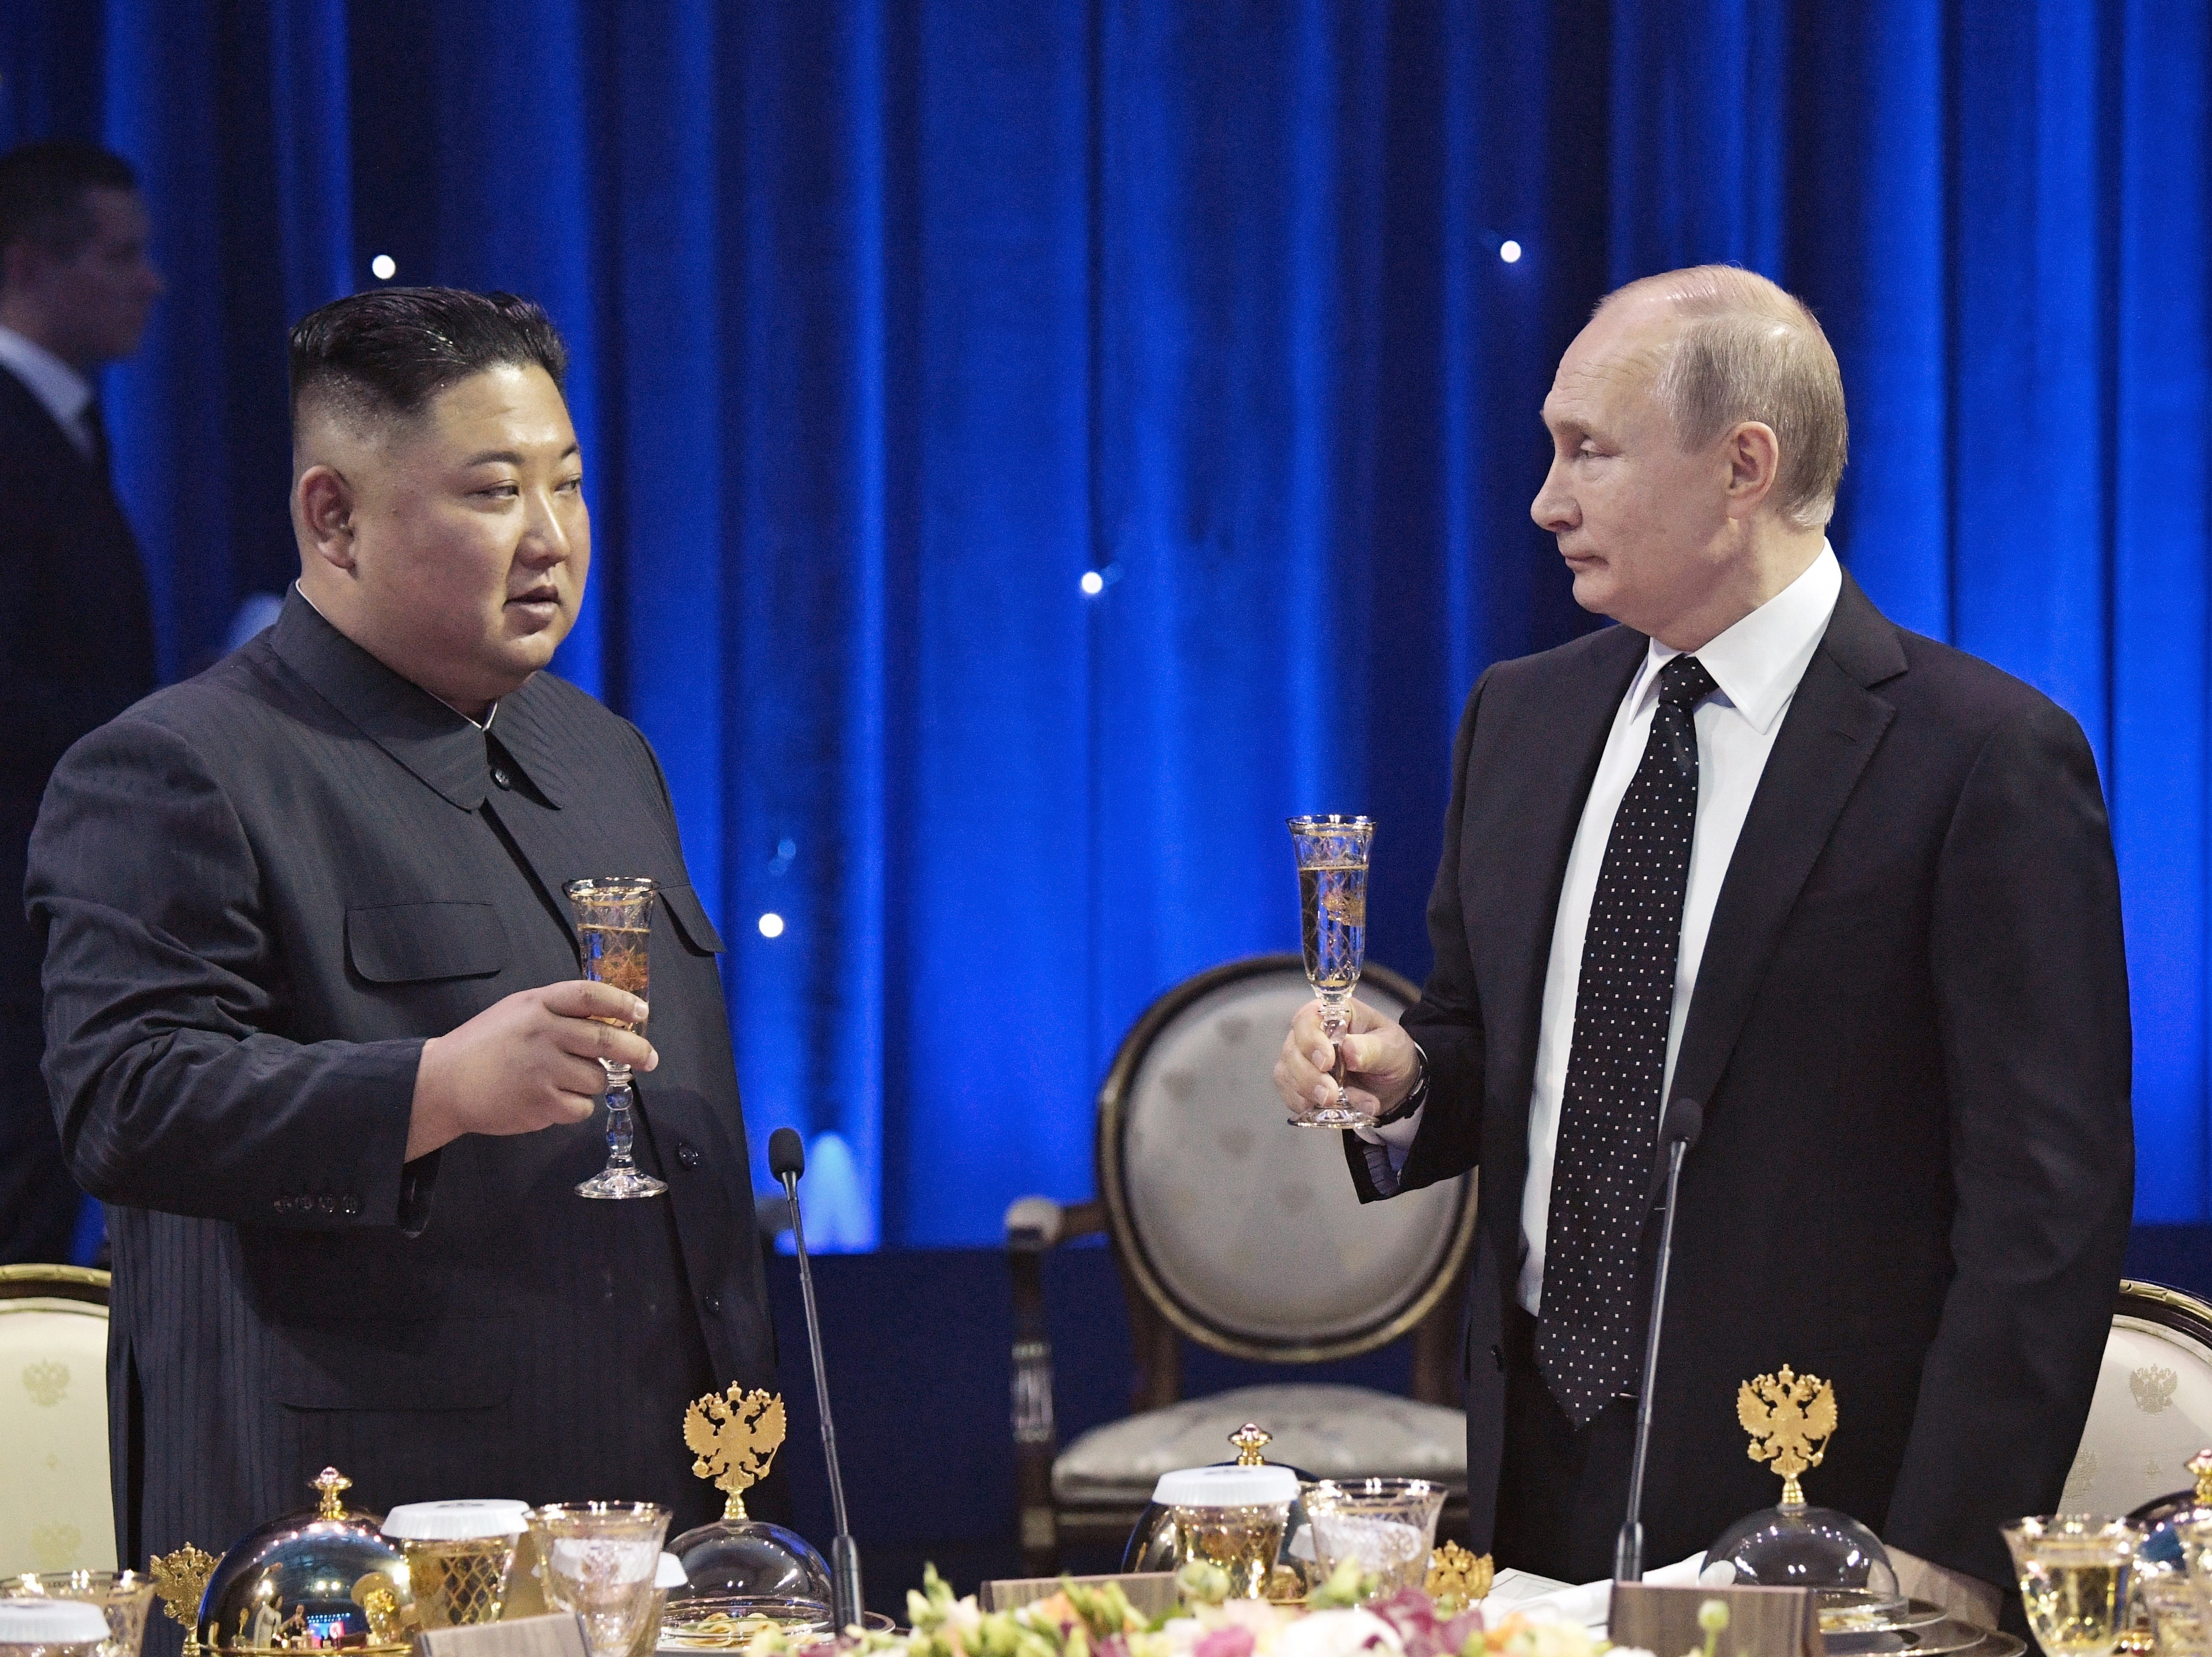 Kim Jong Un Willing To Denuclearize If Given Security Guarantees, Putin Says